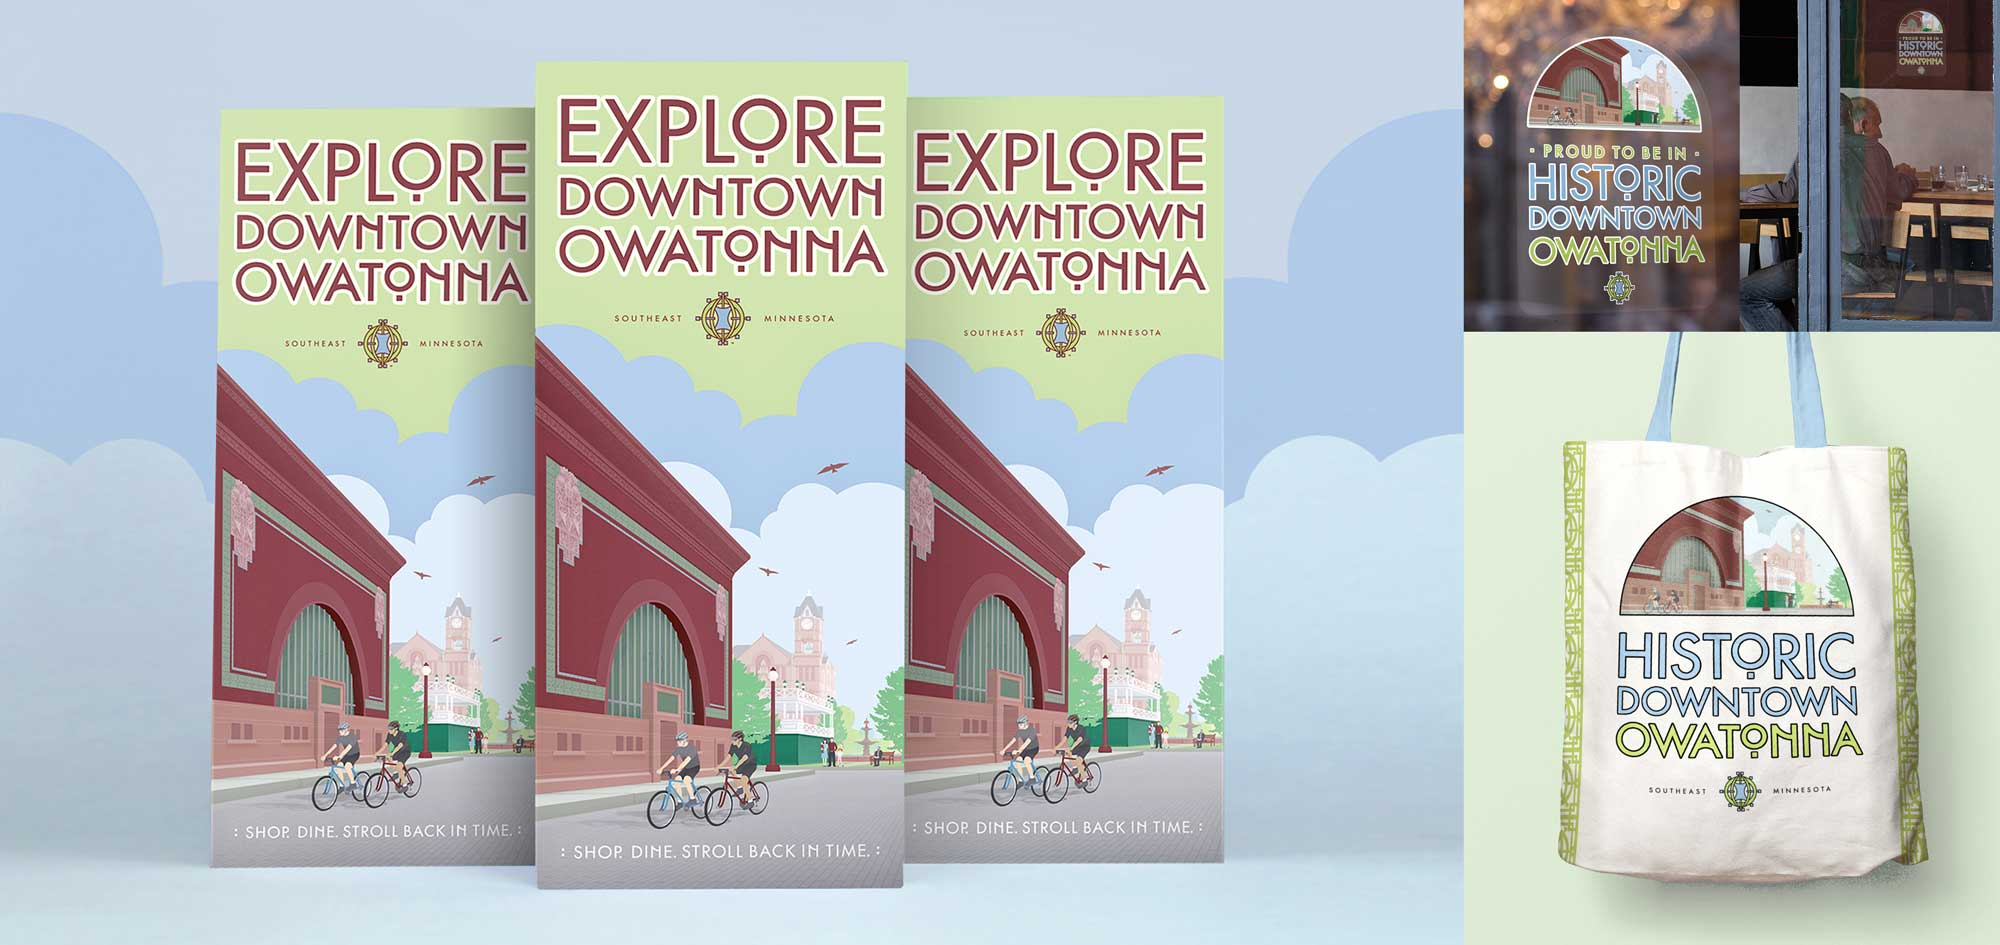 Historic Downtown Owatonna - Marketing & Promotion